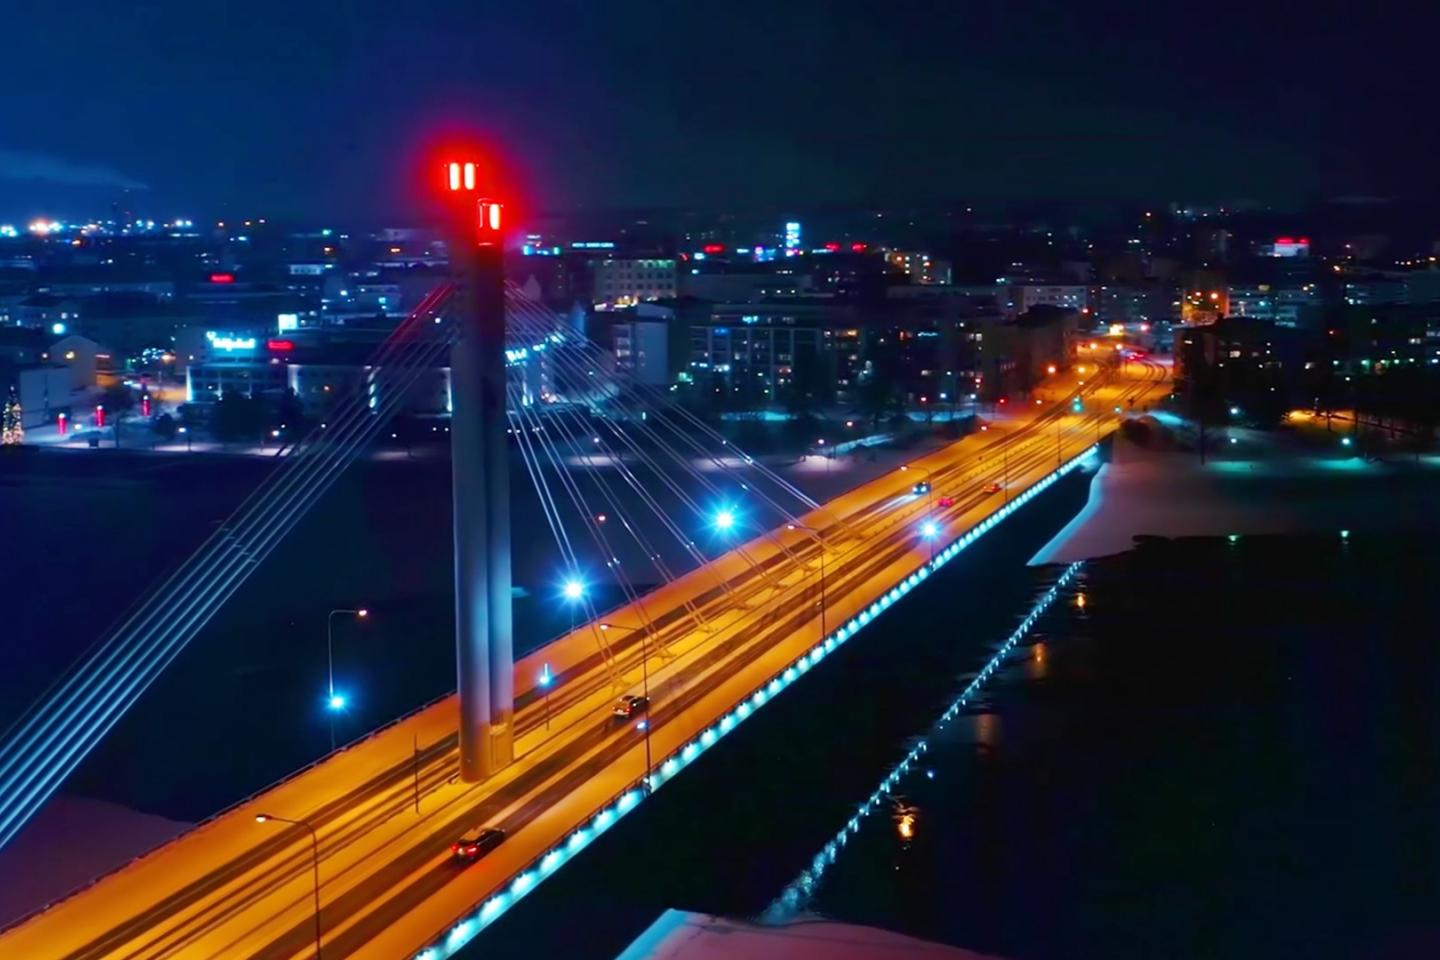 Cityscape by night, with a highway bridge